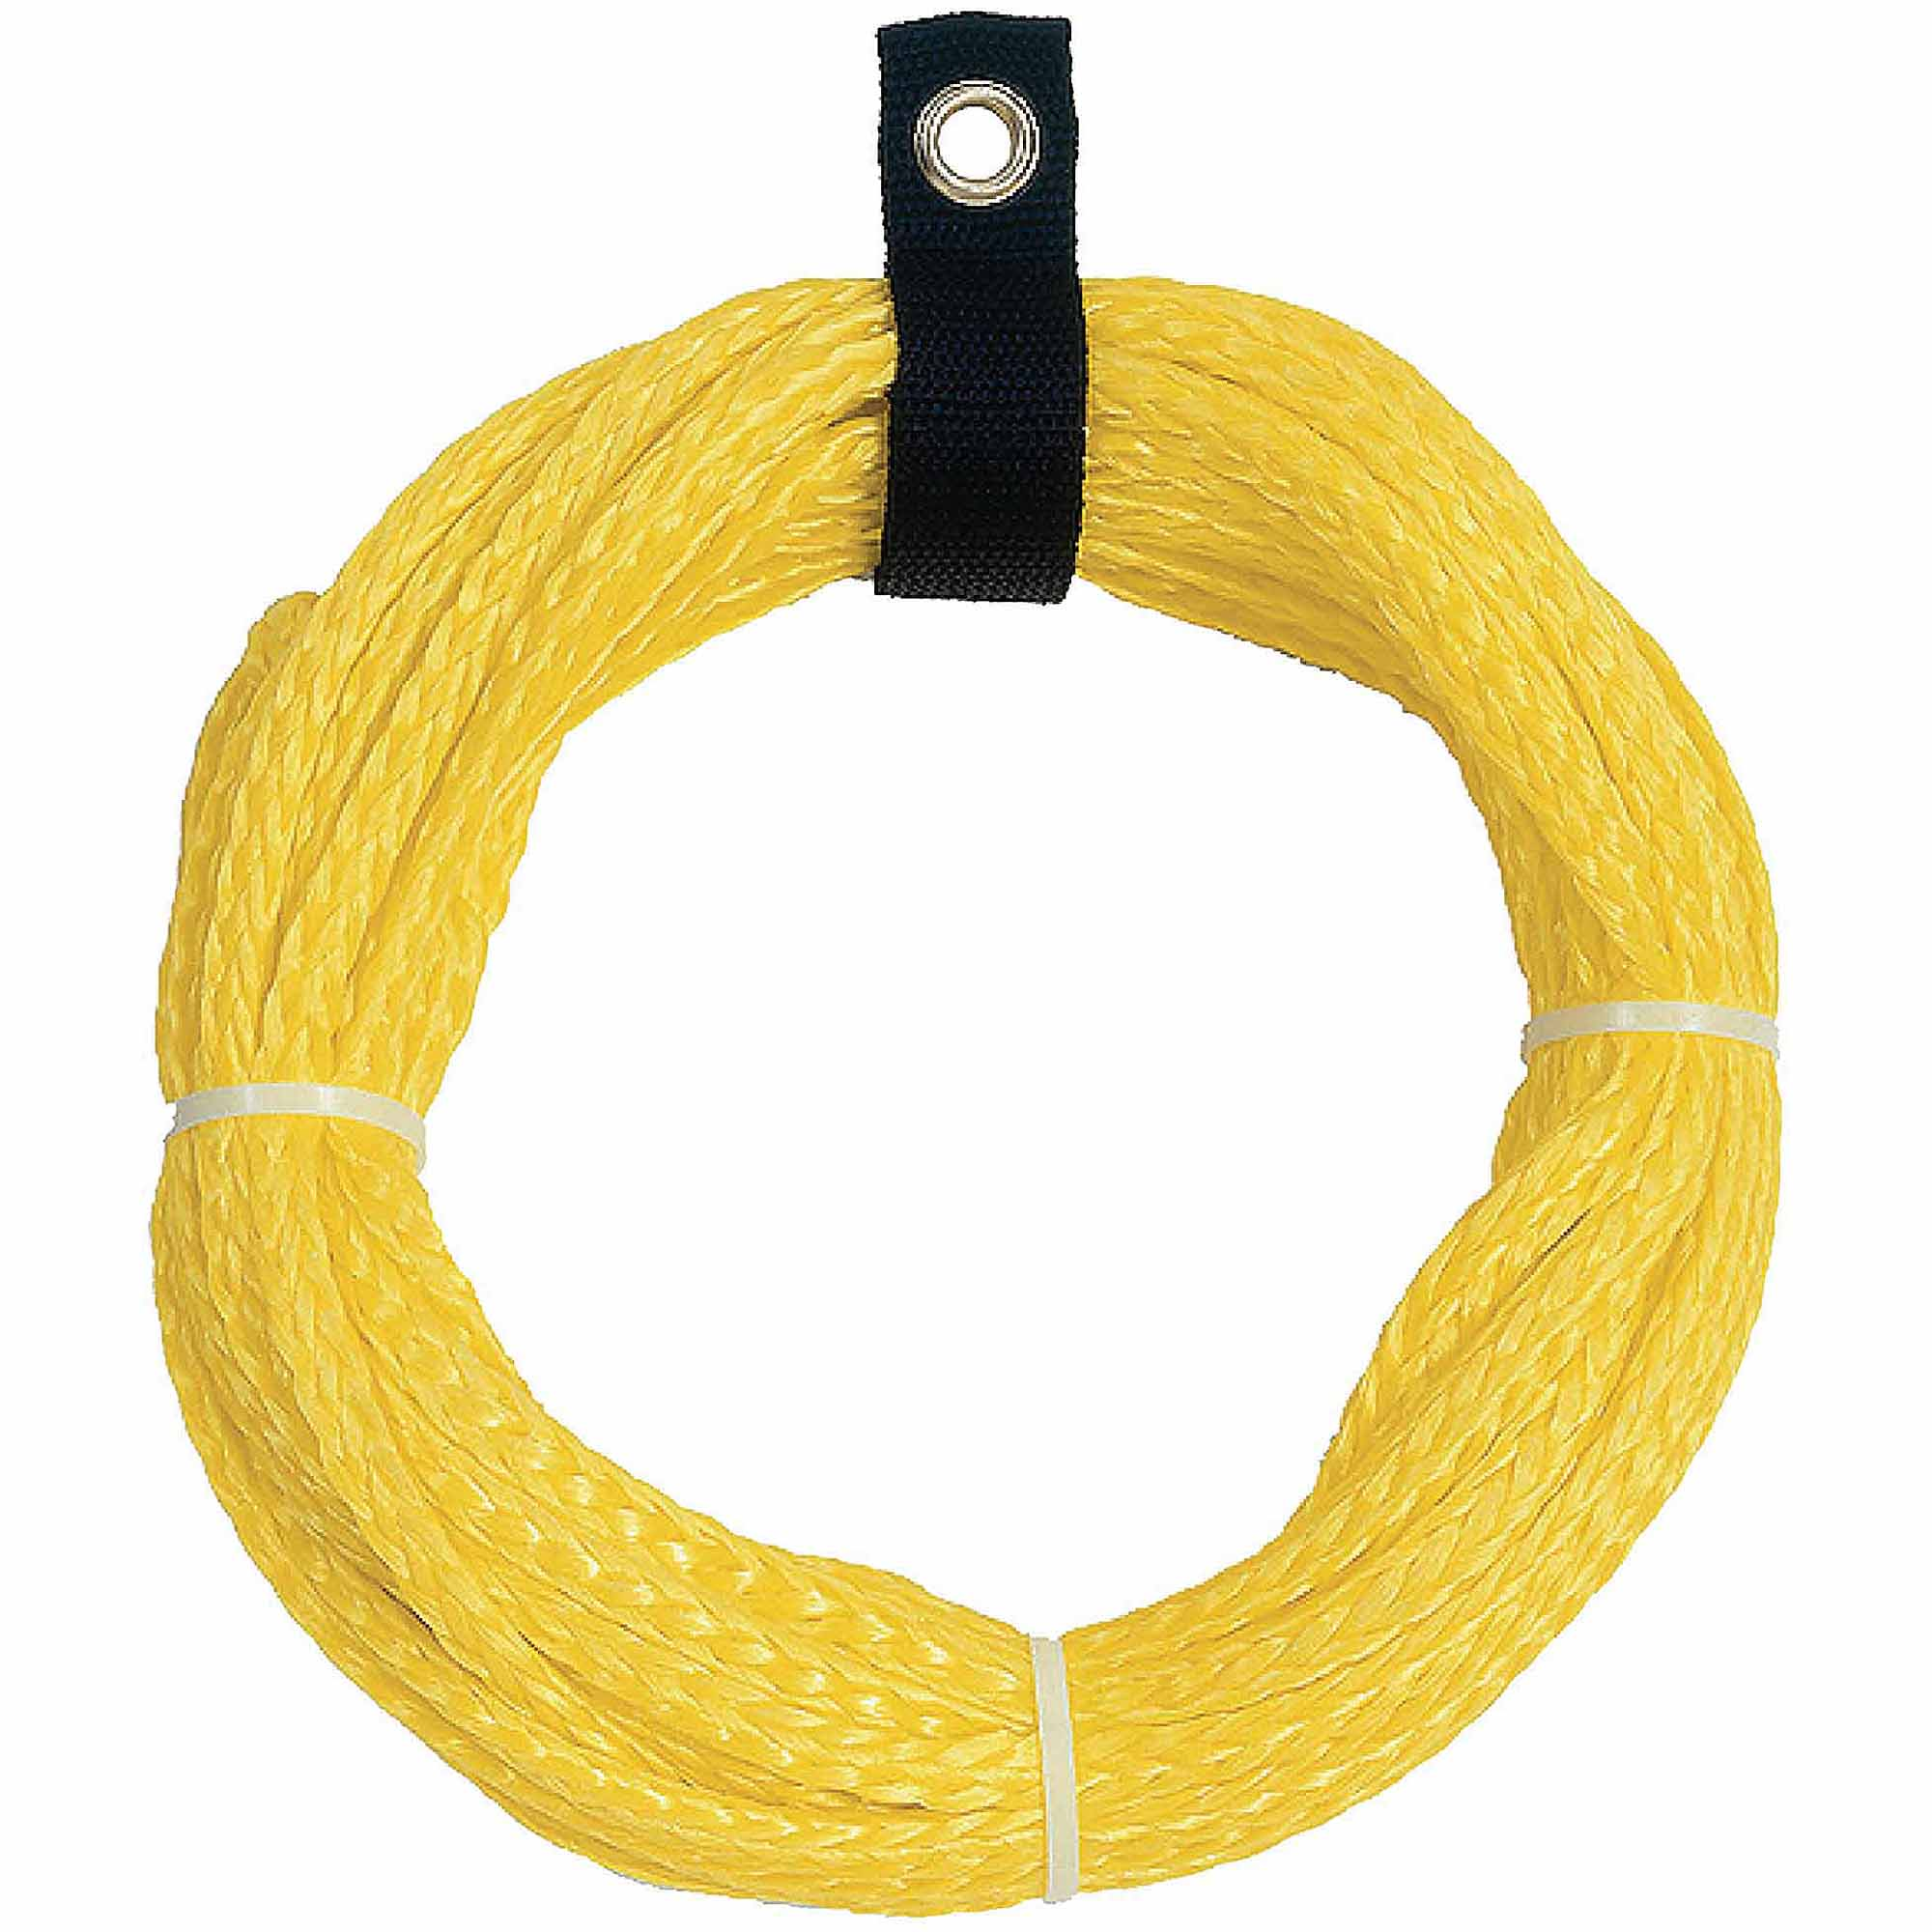 Airhead 1 Section, 1 Rider Tube Tow Rope